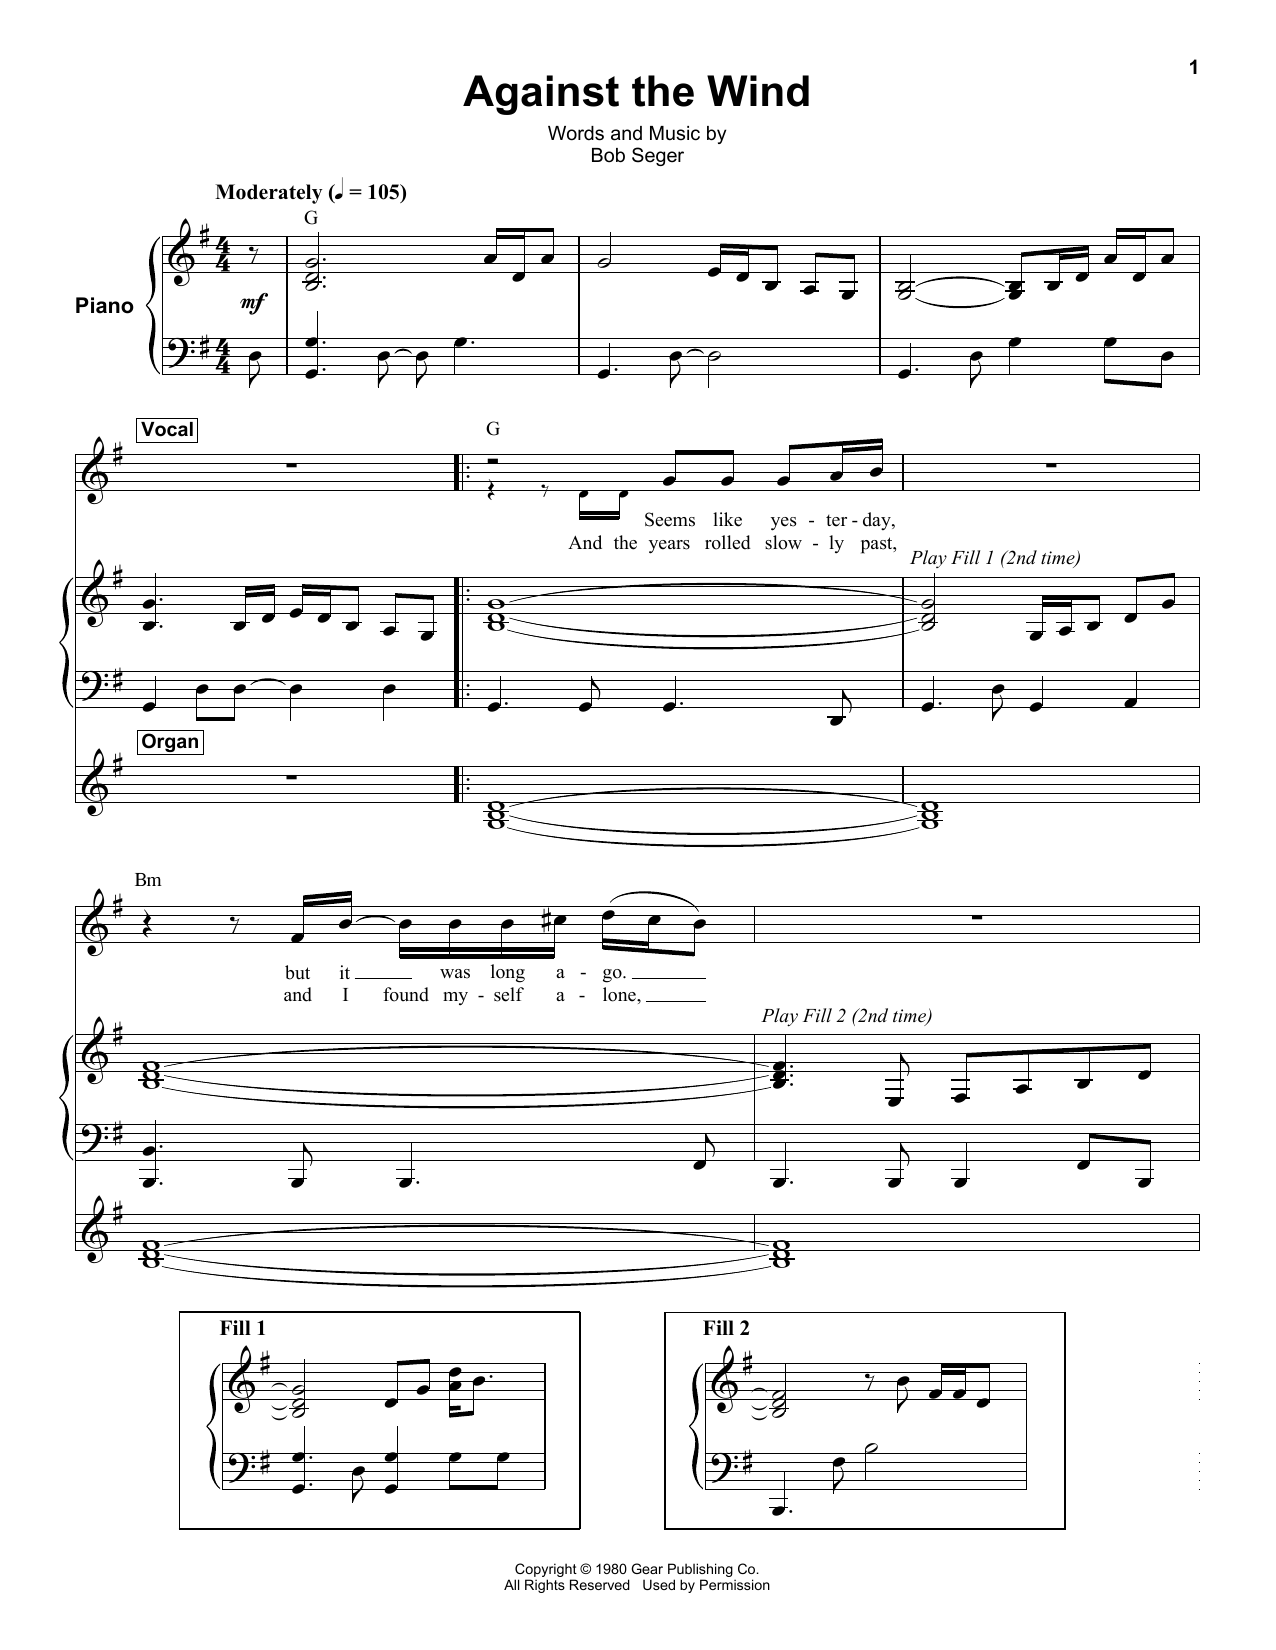 Bob Seger Against The Wind Sheet Music Notes Chords Printable